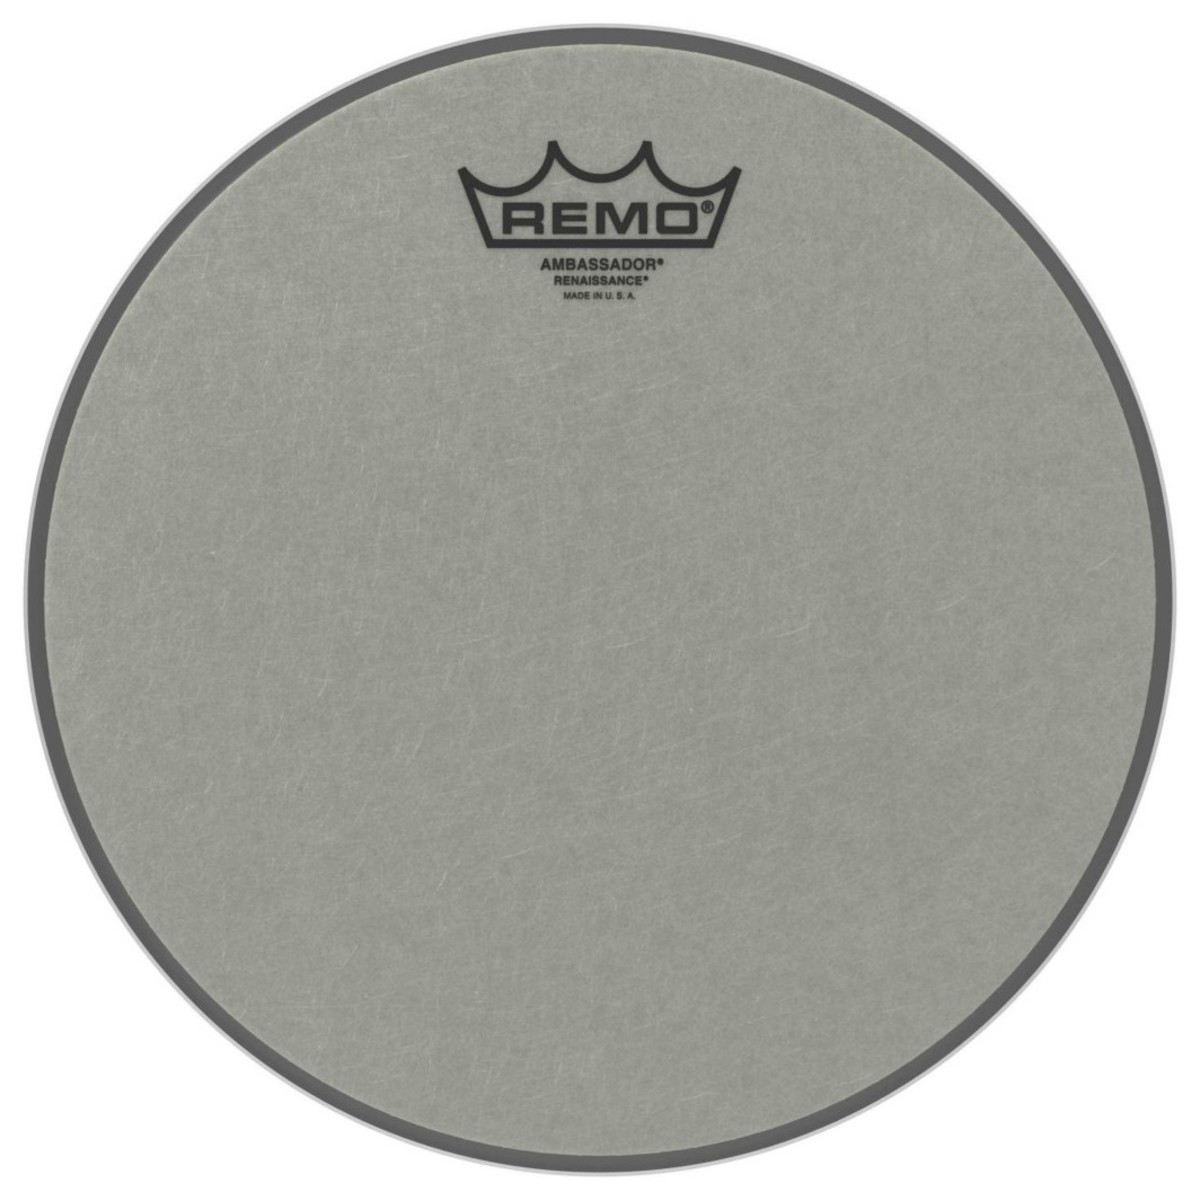 Click to view product details and reviews for Remo Ambassador Renaissance 20 Bass Drum Head.